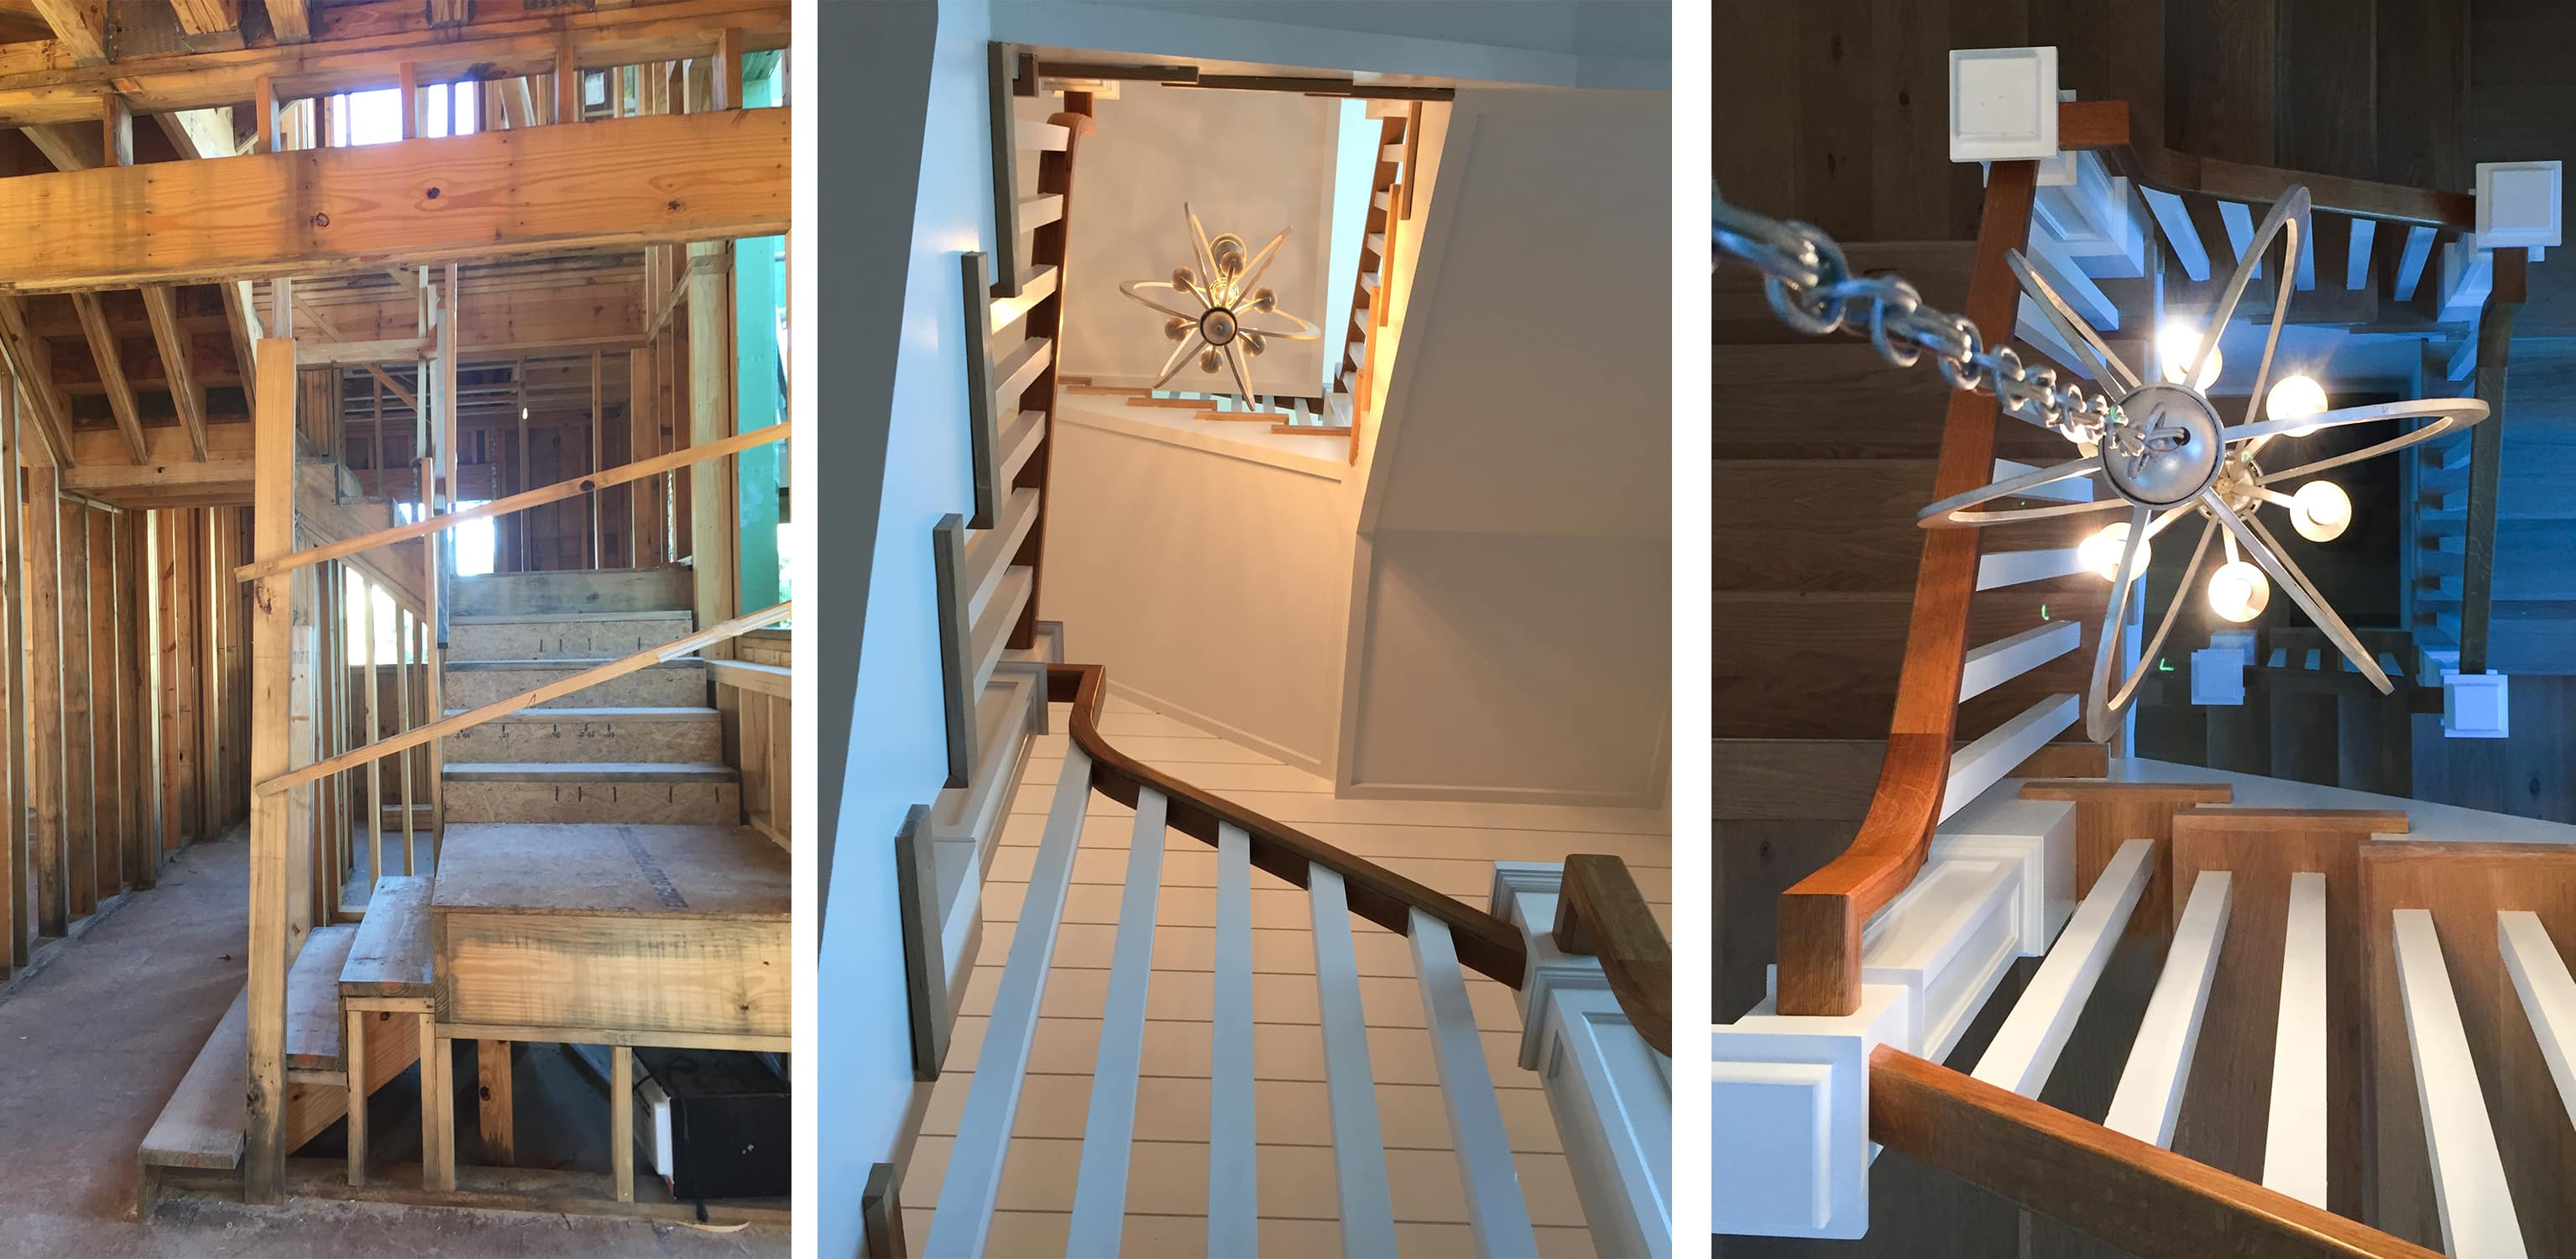 stairwell construction at the watersound beach property - darci hether new york